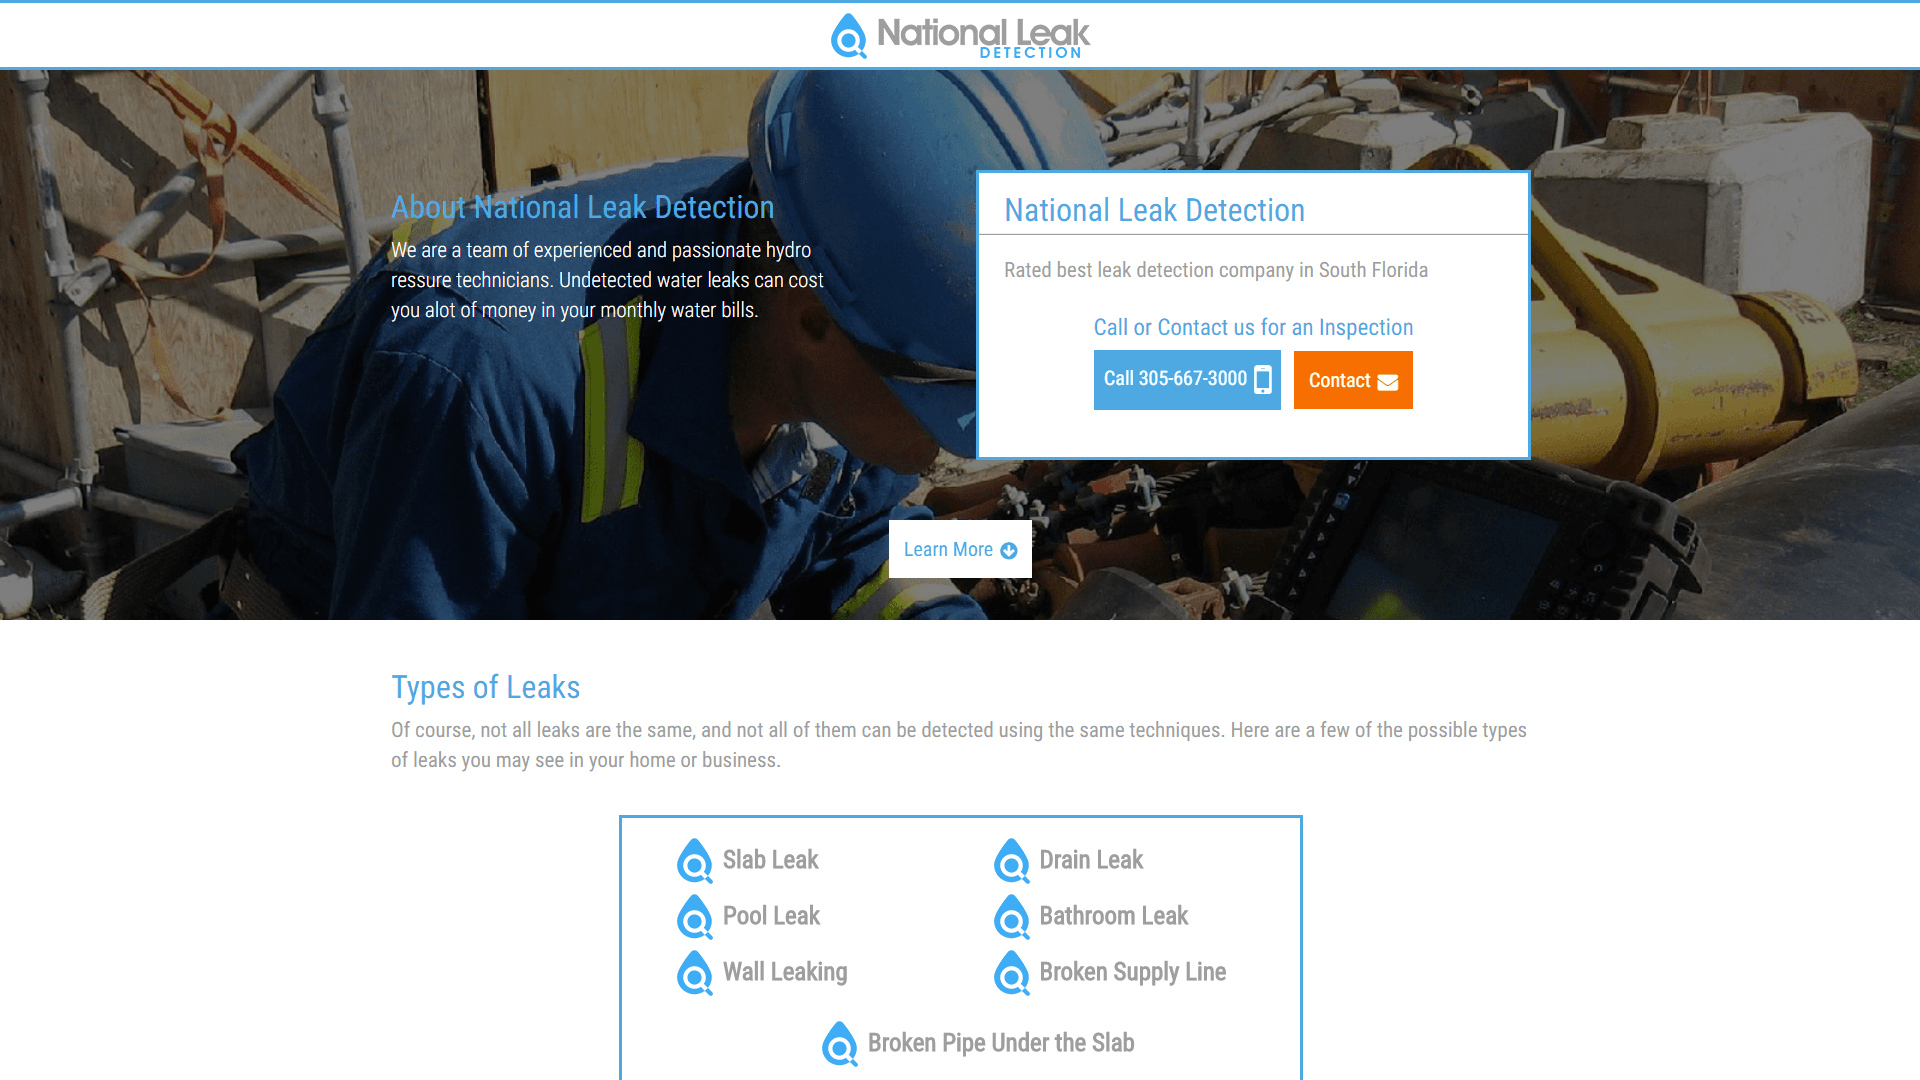 National Leak Detection Website